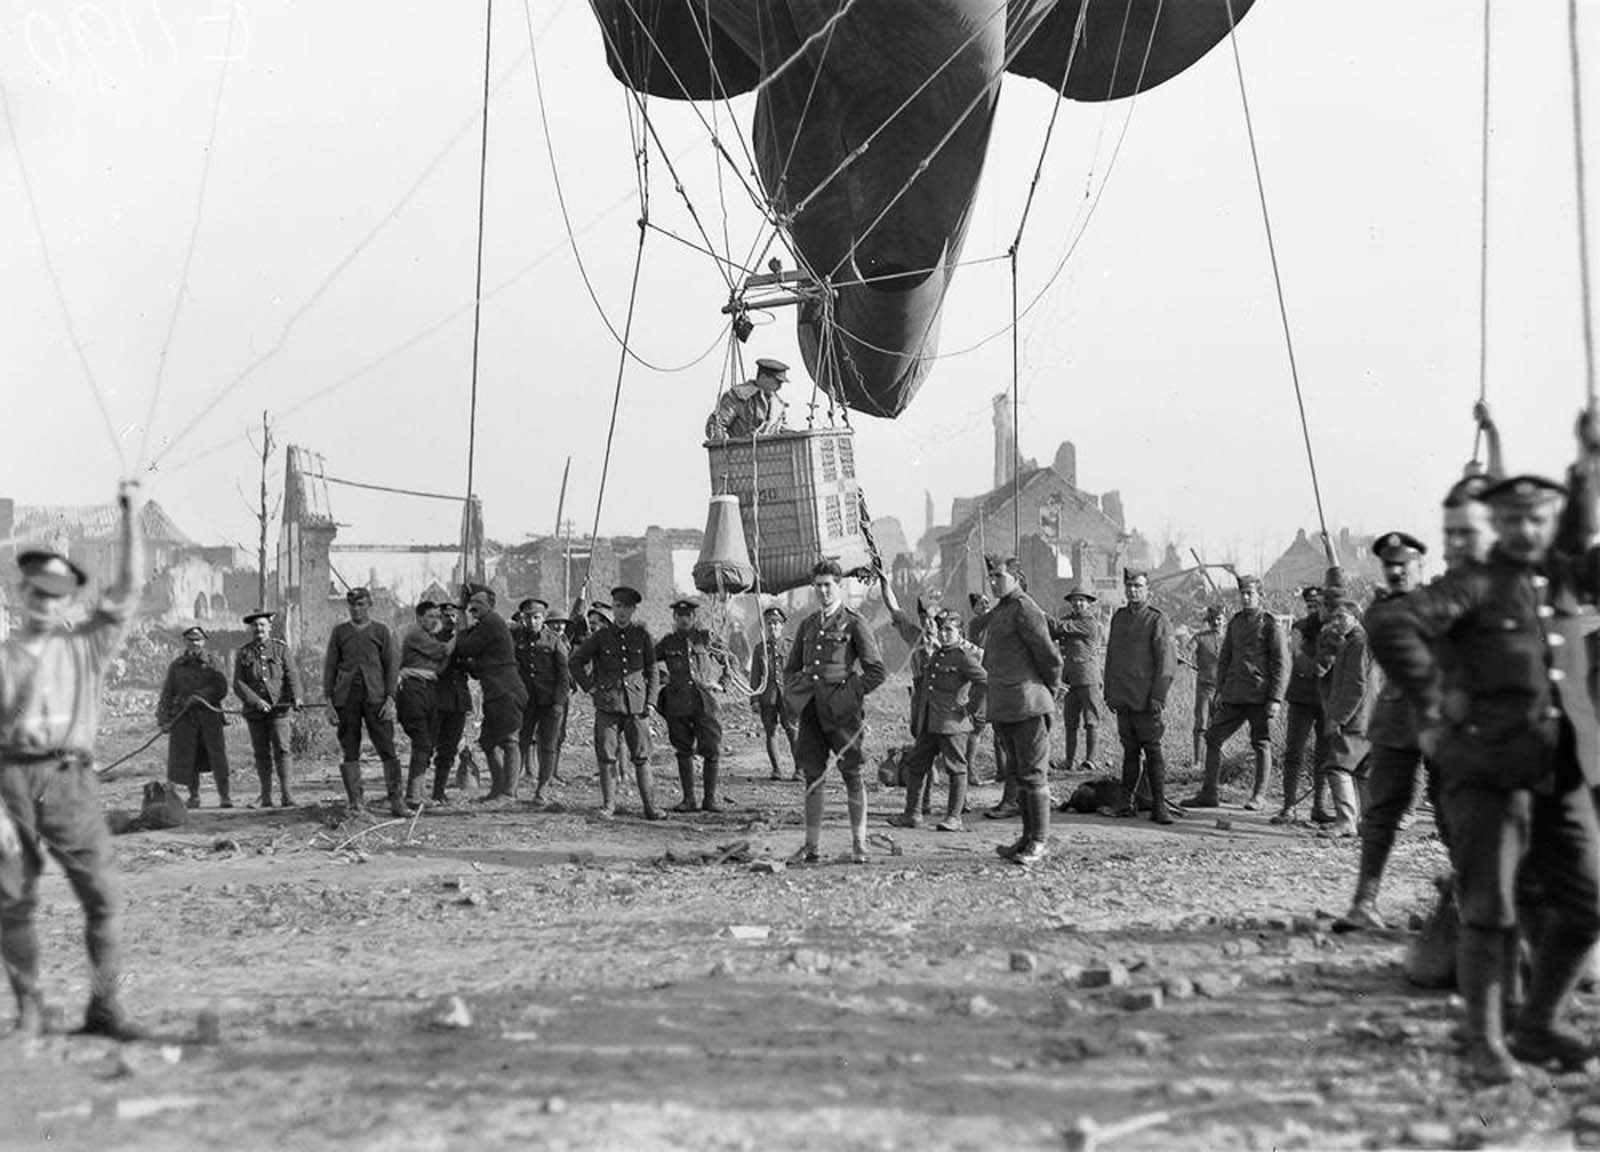 An officer prepares to ascend in an observation balloon near the ruins of Ypres, Belgium. 1917.